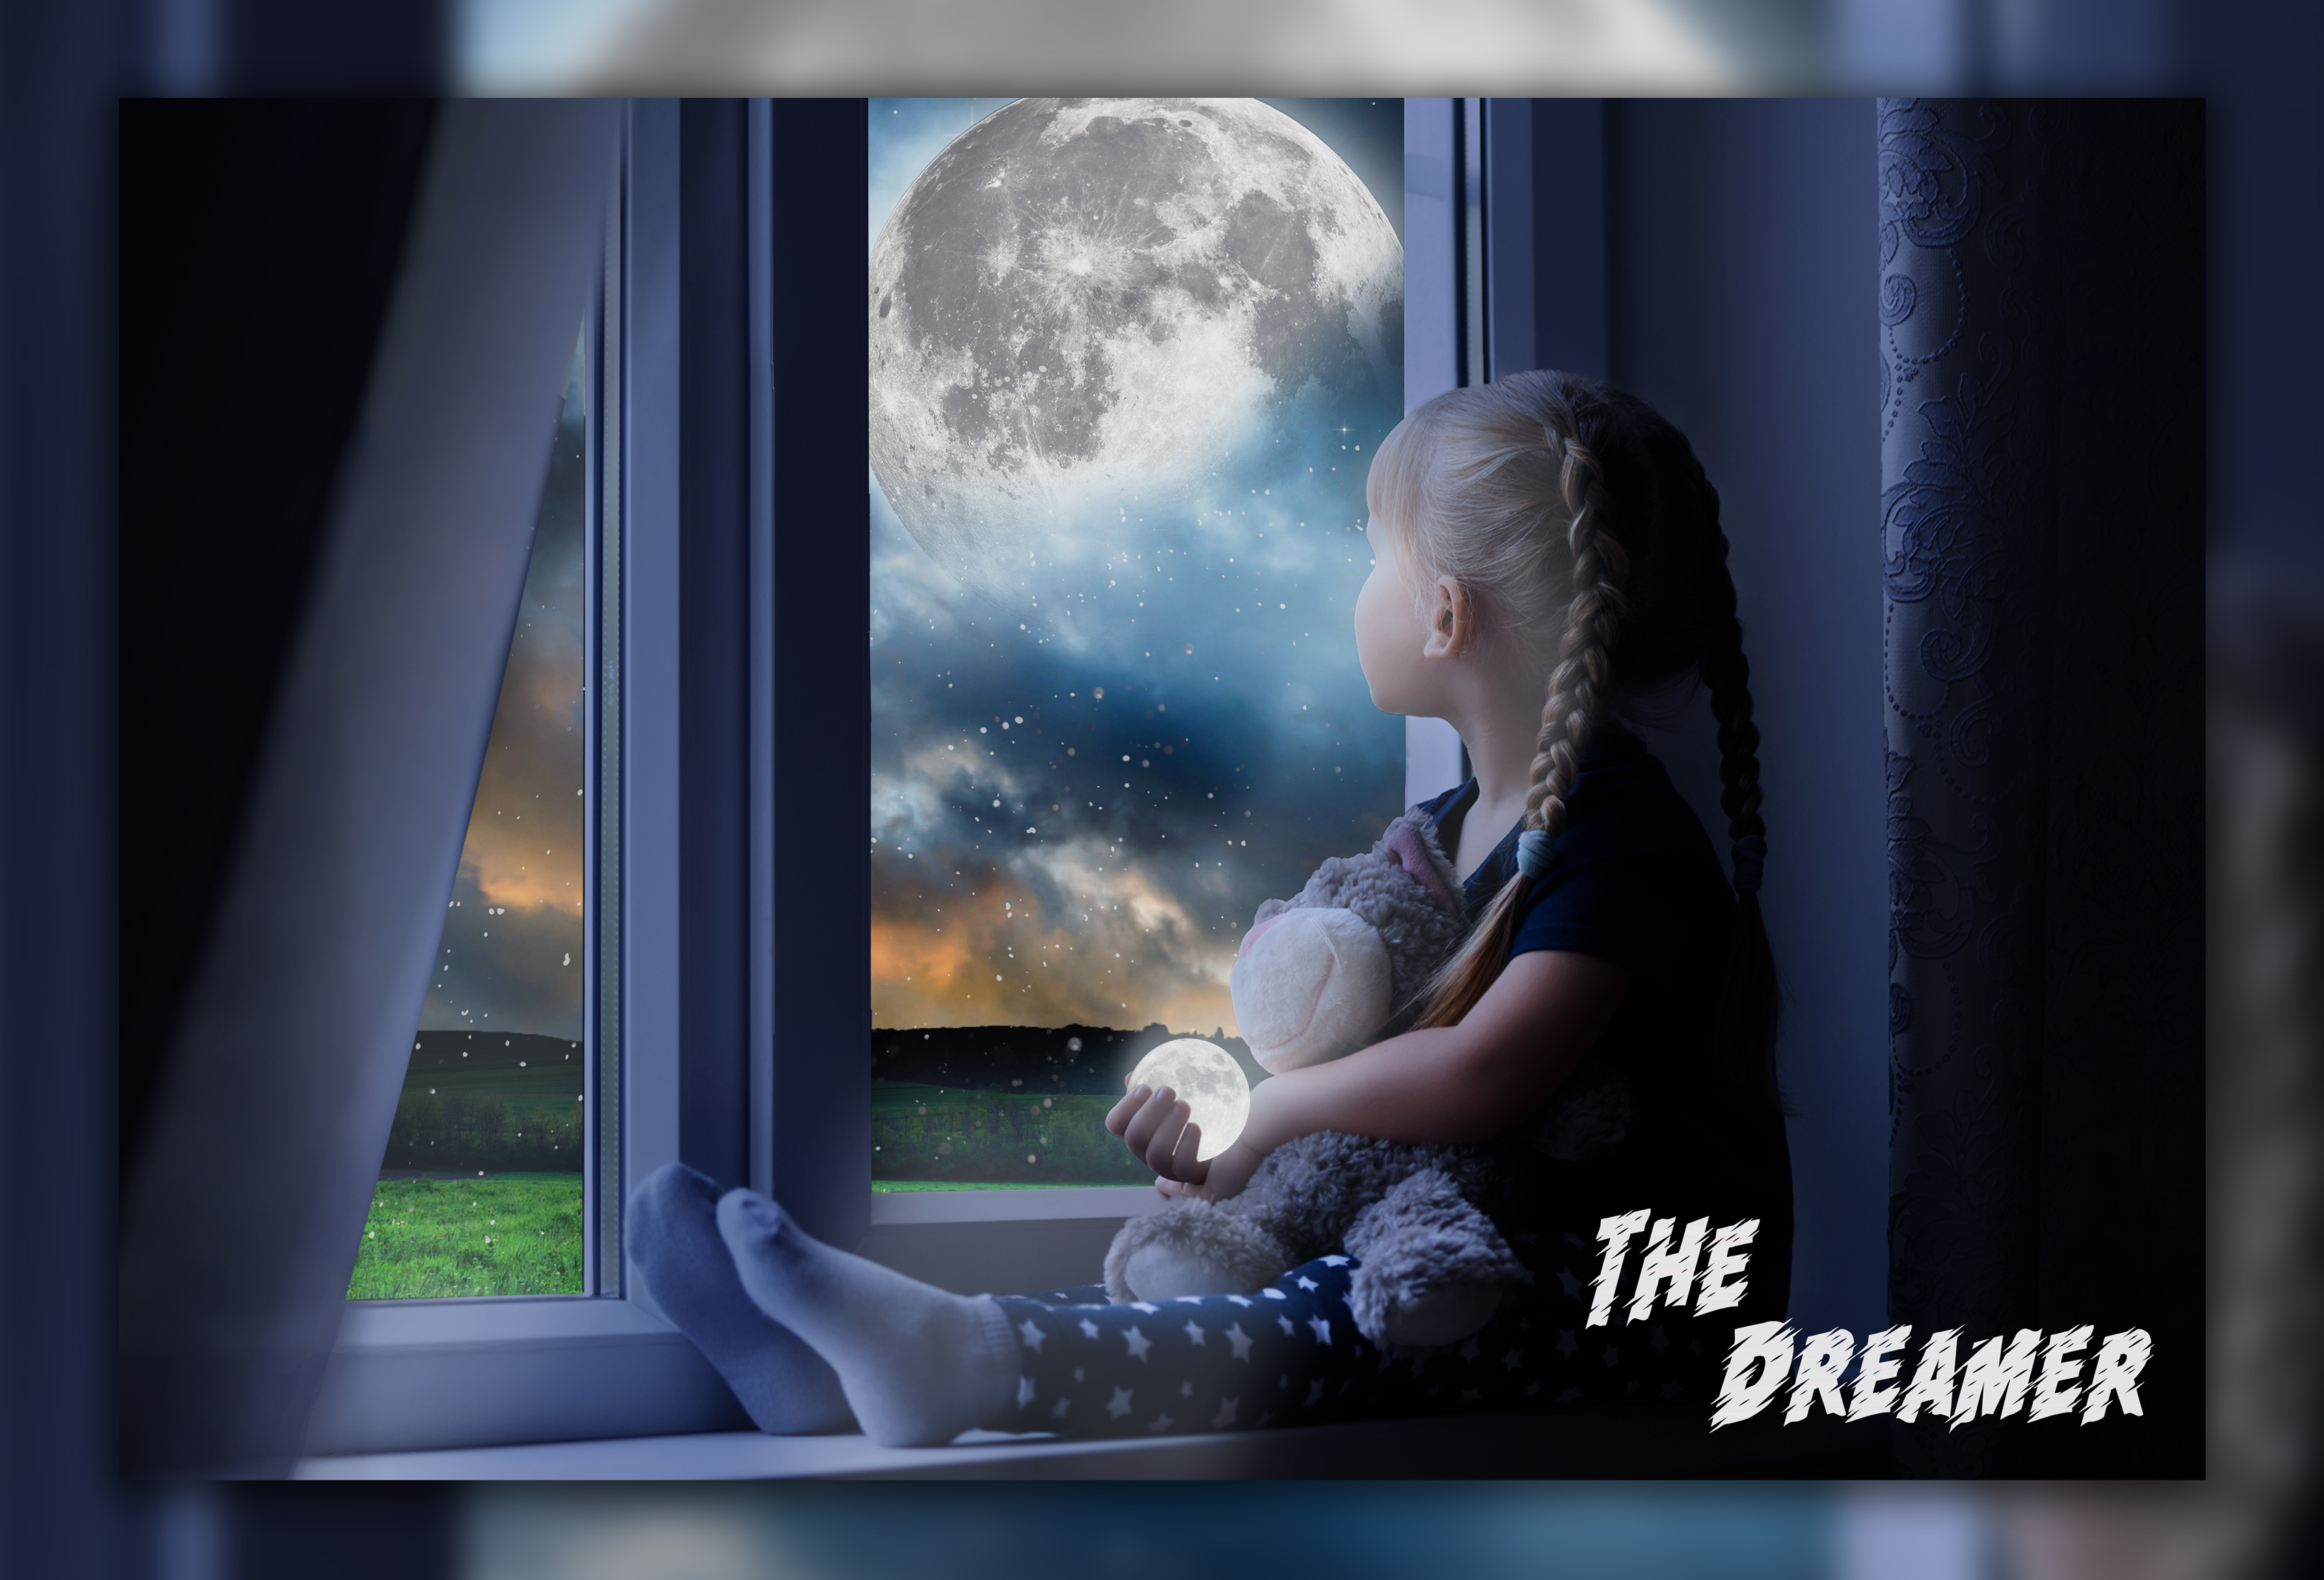 The Dreamer Manipulation